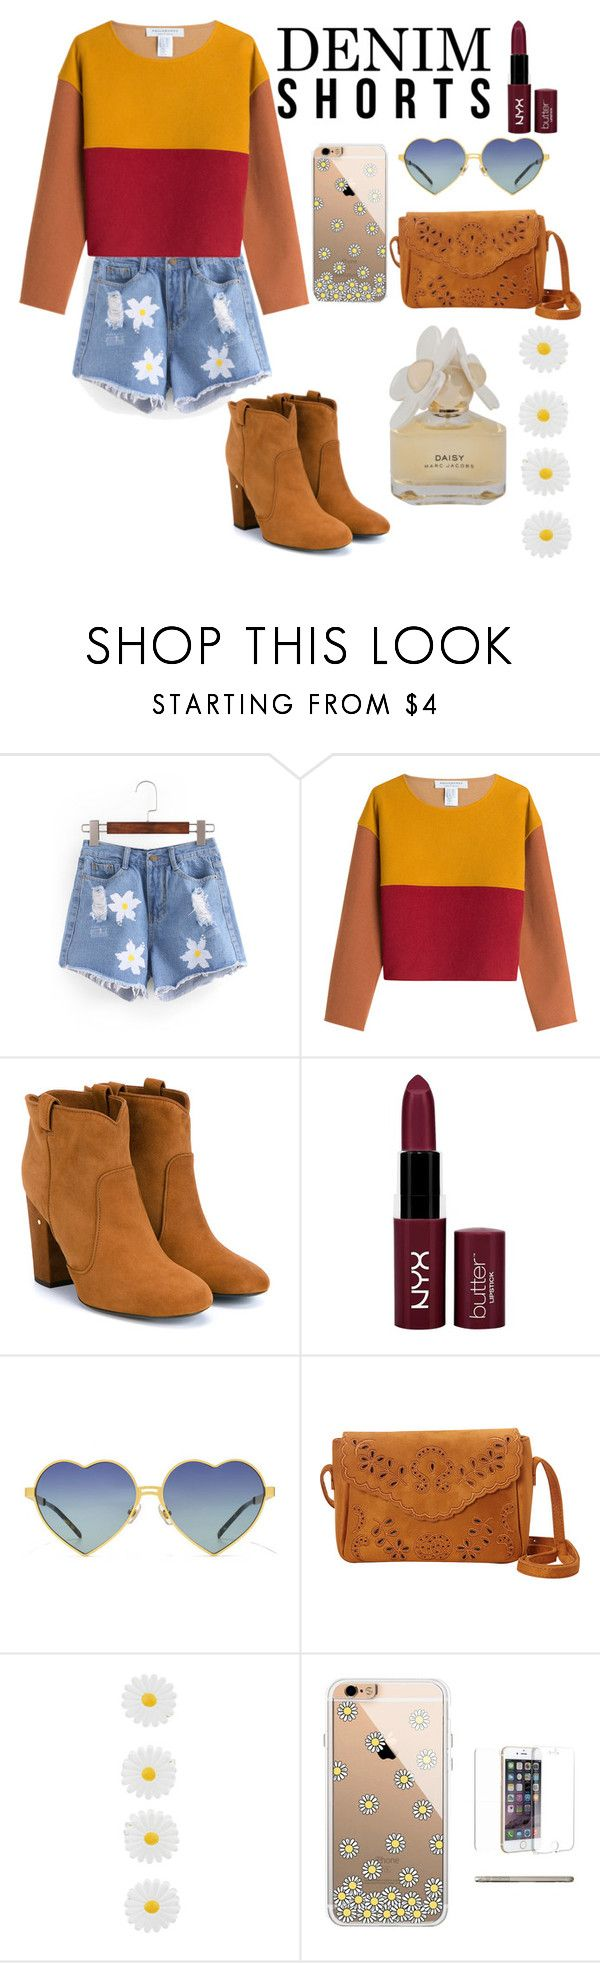 """""""Daisy shorts"""" by monsterderie ❤ liked on Polyvore featuring Philosophy di Lorenzo Serafini, Laurence Dacade, NYX, Wildfox, Nu-G, Accessorize, Marc by Marc Jacobs, jeanshorts, denimshorts and cutoffs"""